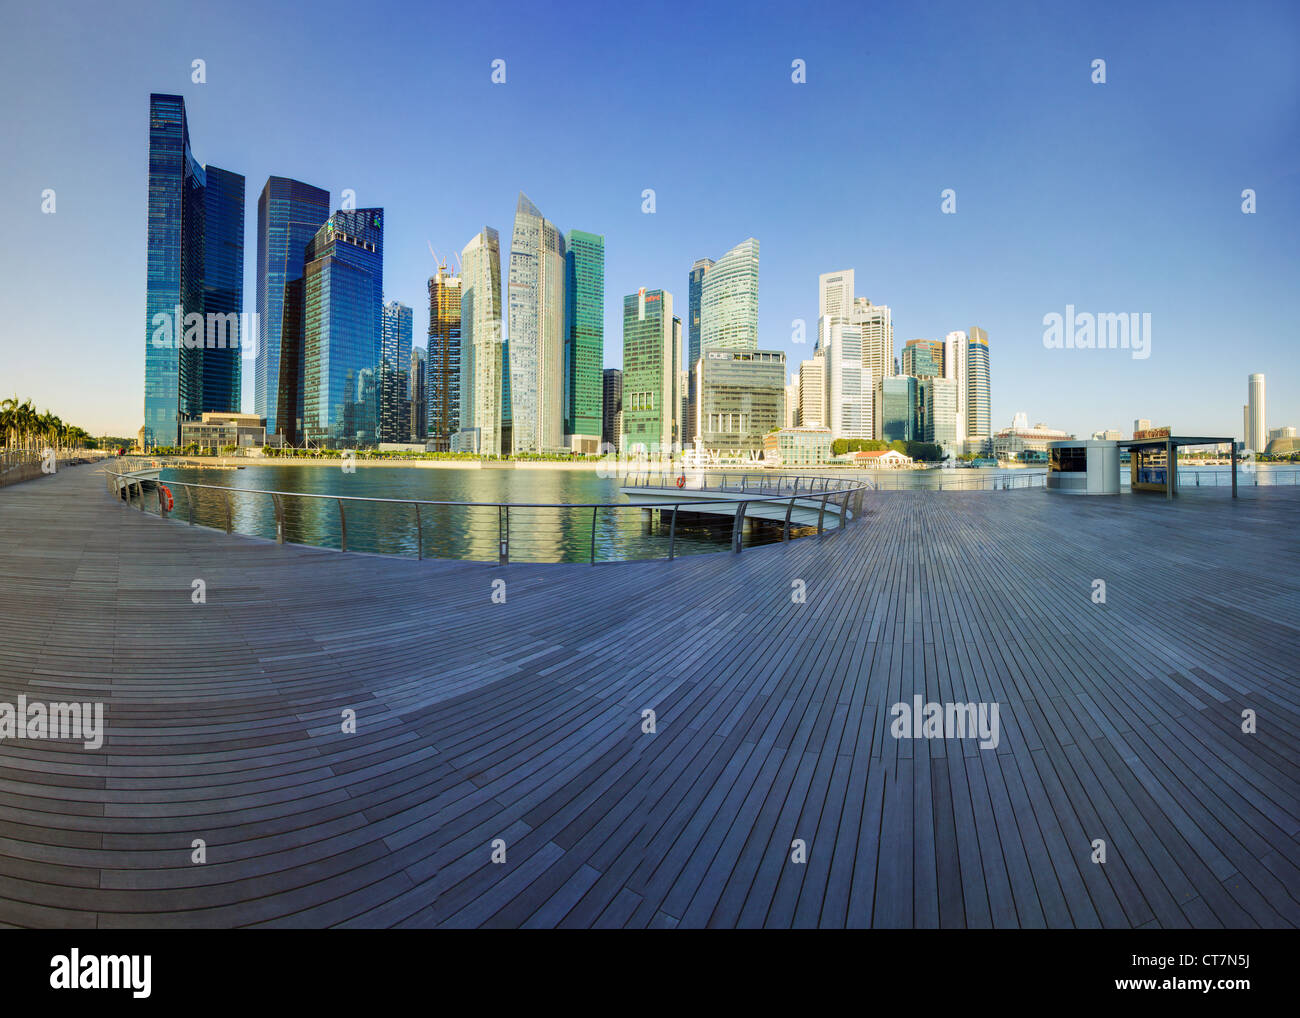 L'Asie du Sud Est, Singapour, centre financier et Marina Bay Photo Stock